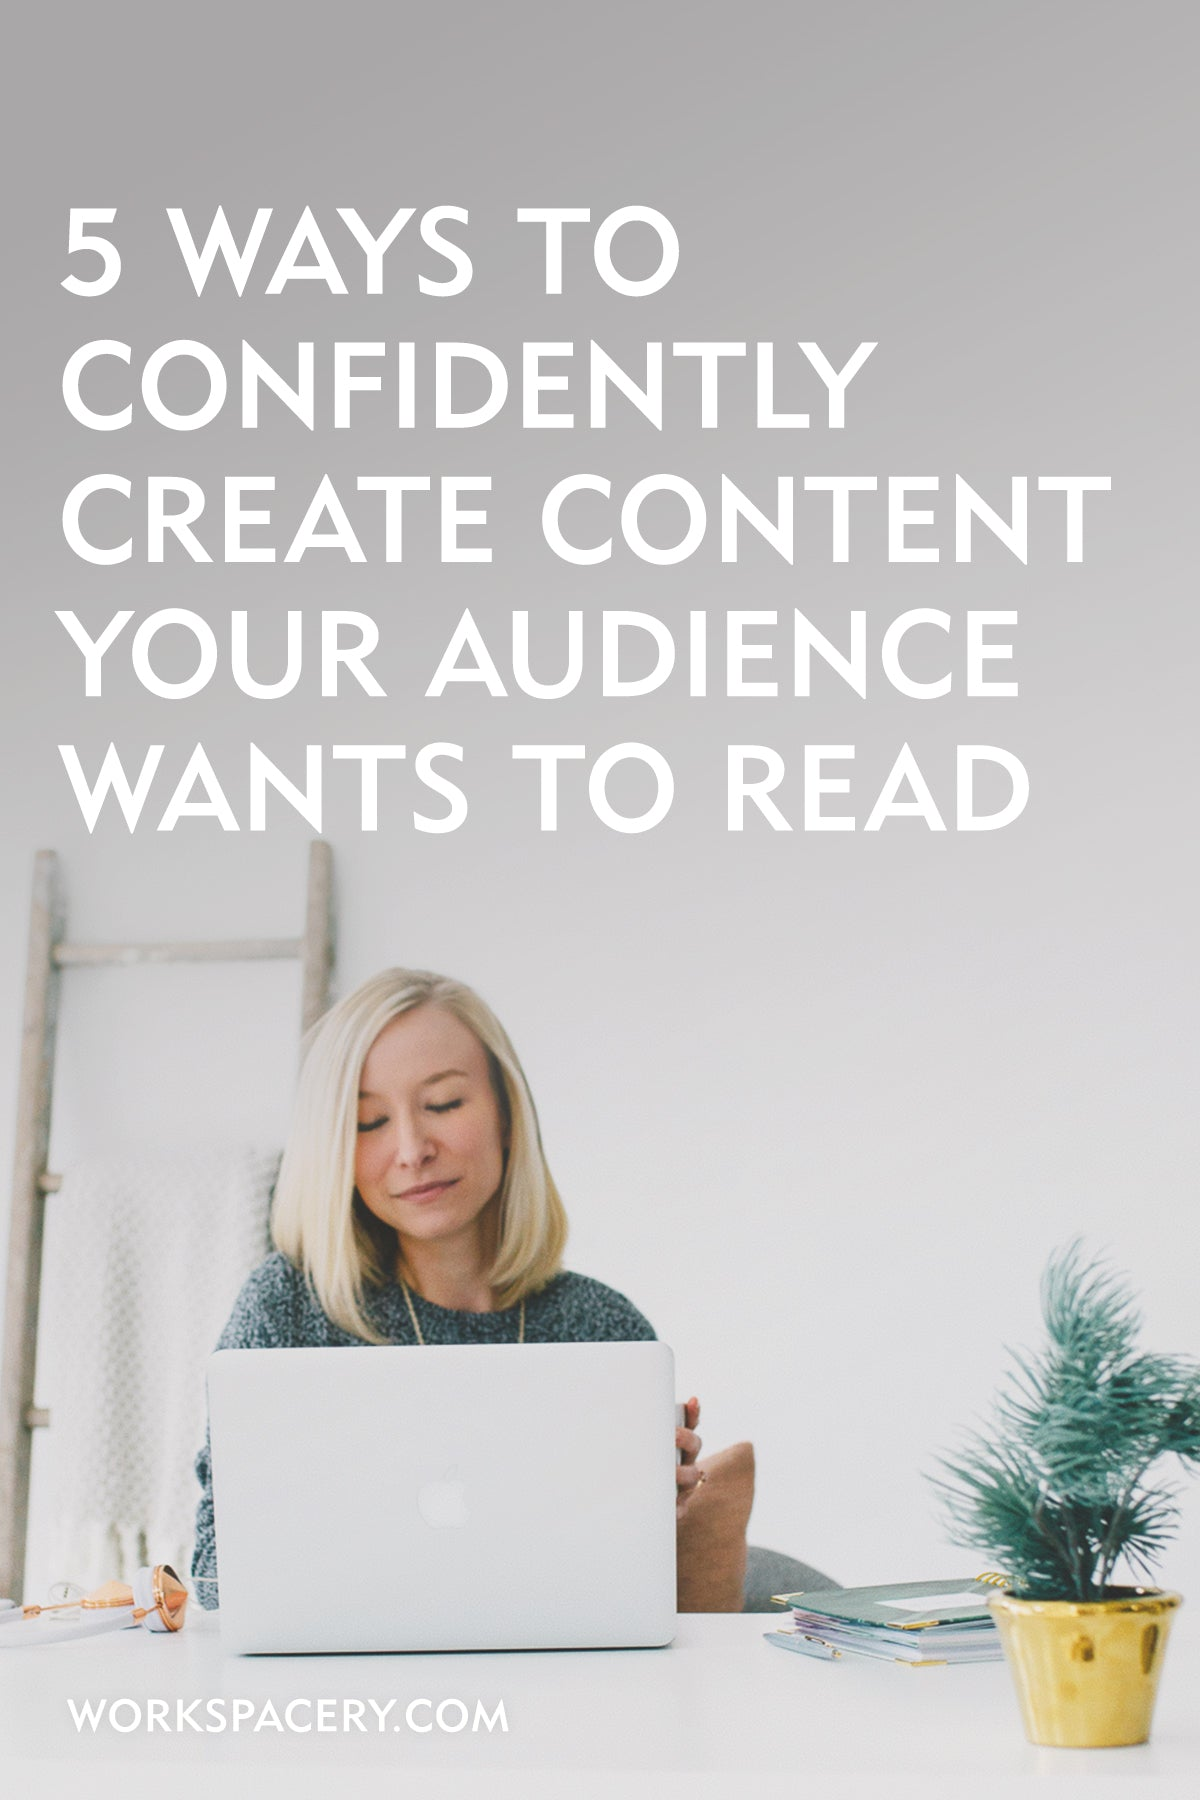 5 Ways to Confidently Create Content Your Audience WANTS to Read this Year